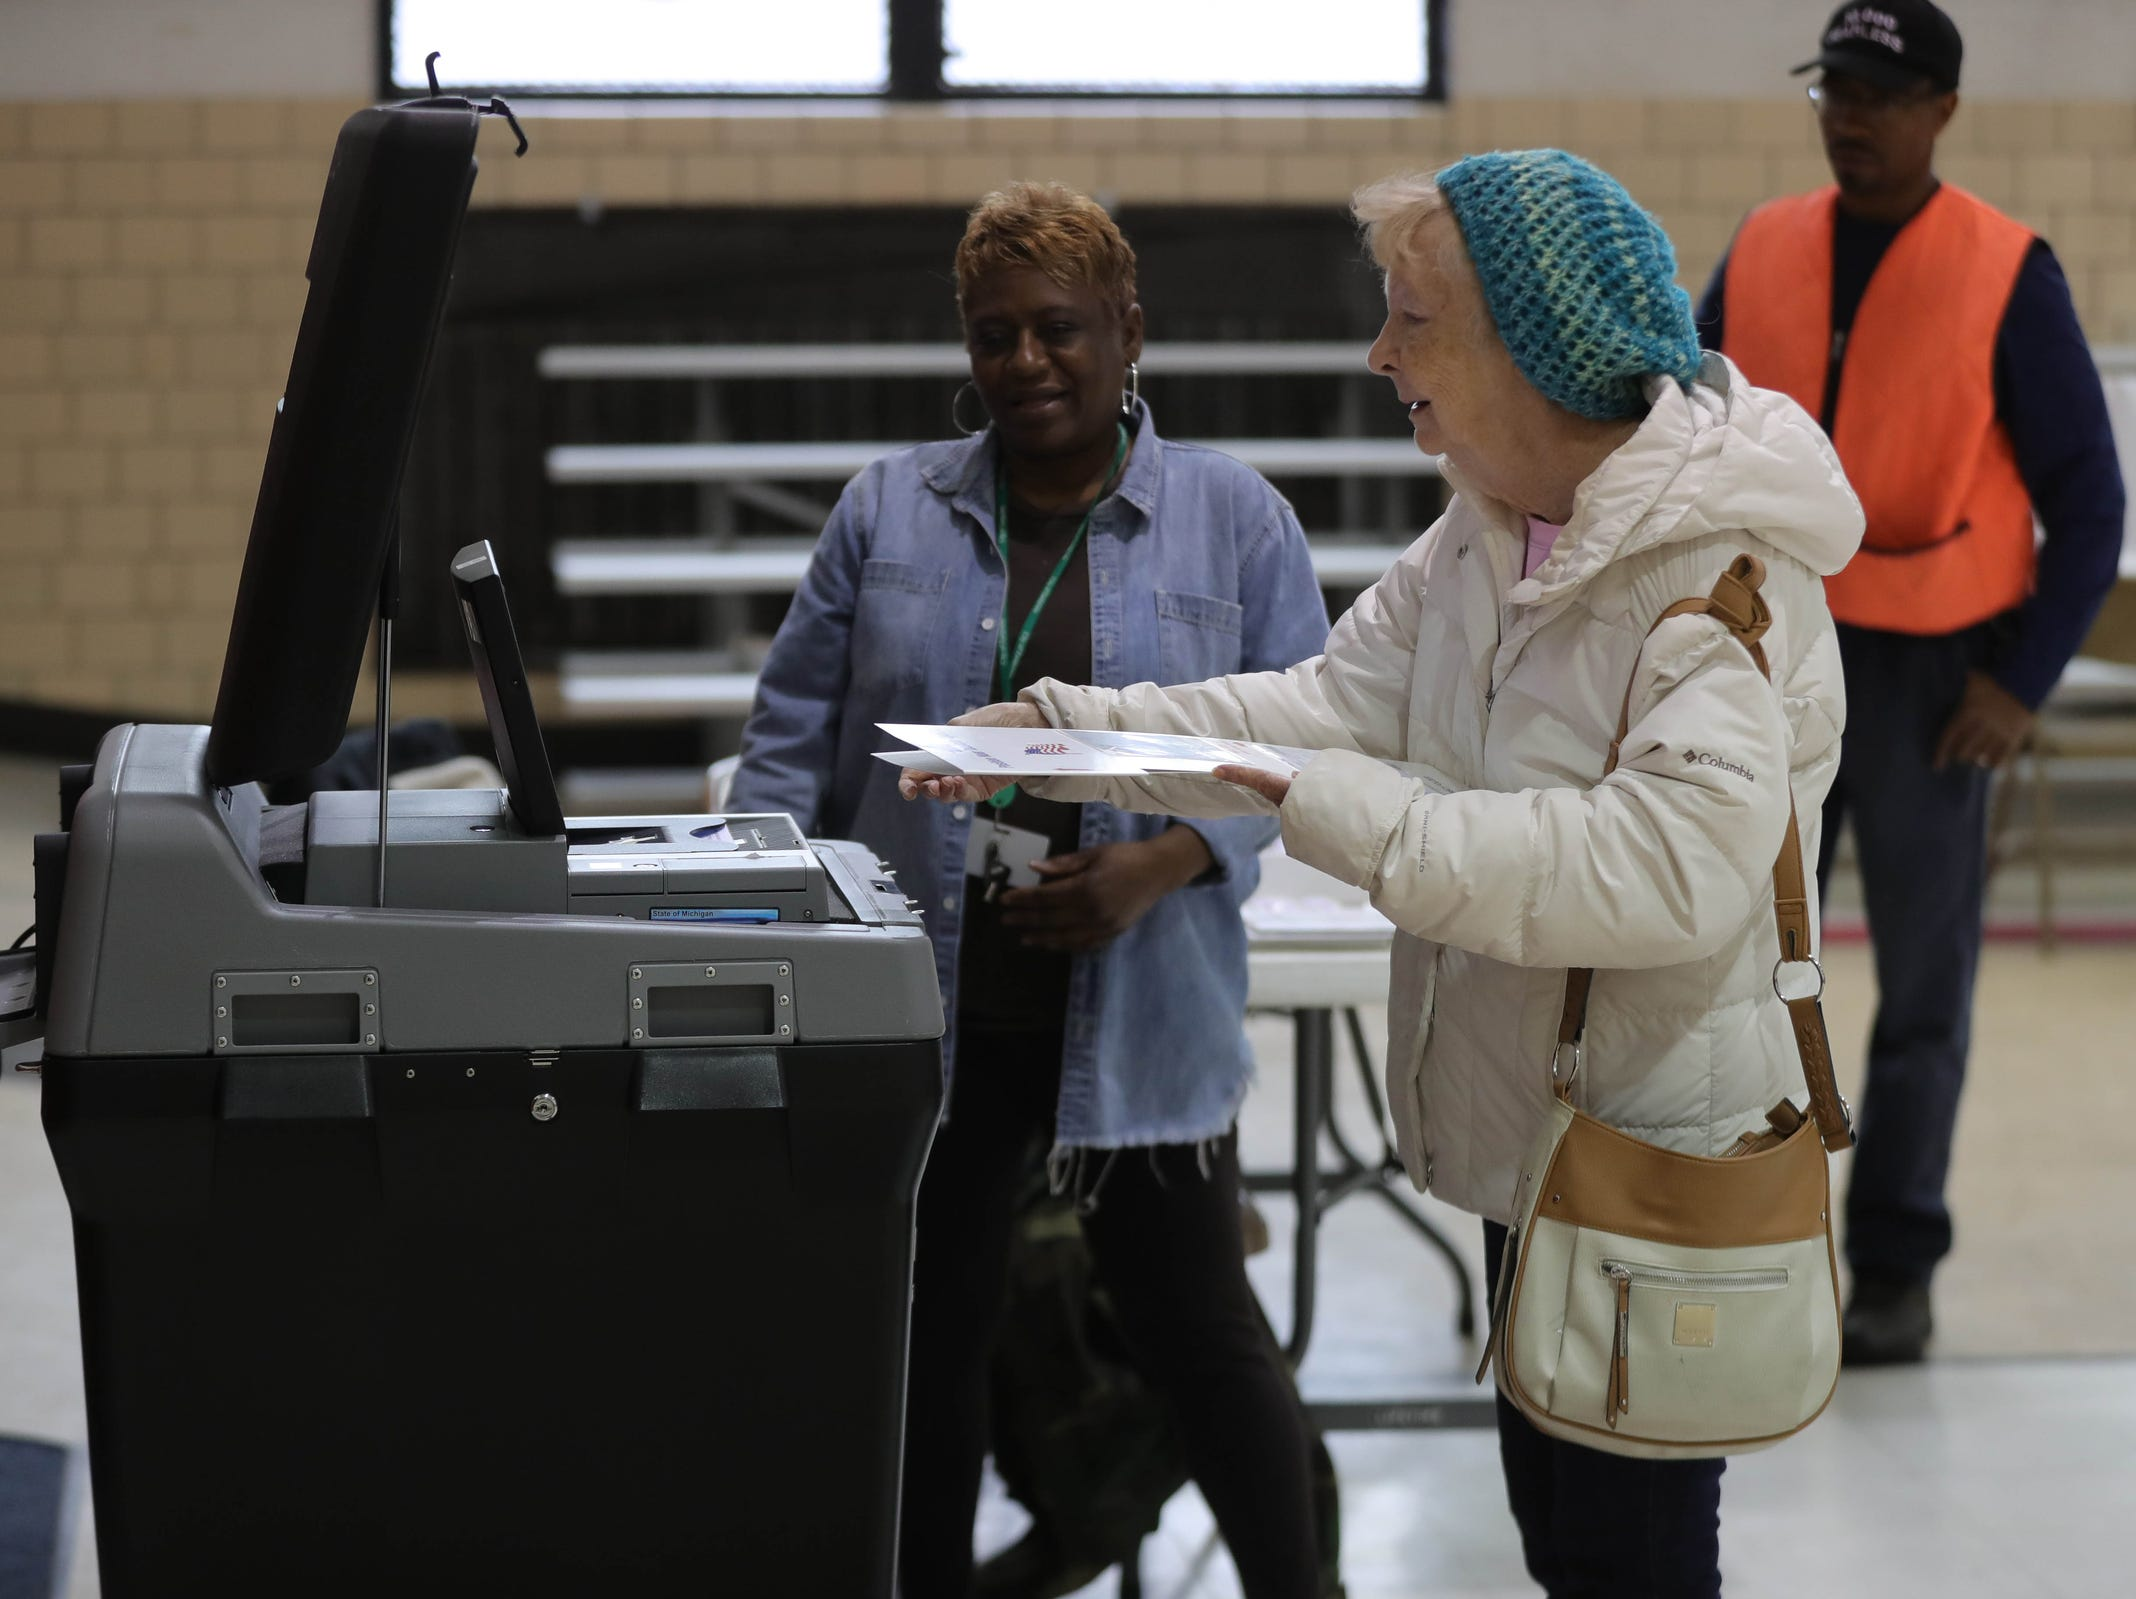 Carol Richardson helps Barbara Van Hooser cast her vote Tuesday, November 6, 2018 at the 7th precinct in East Pointe, Mich.